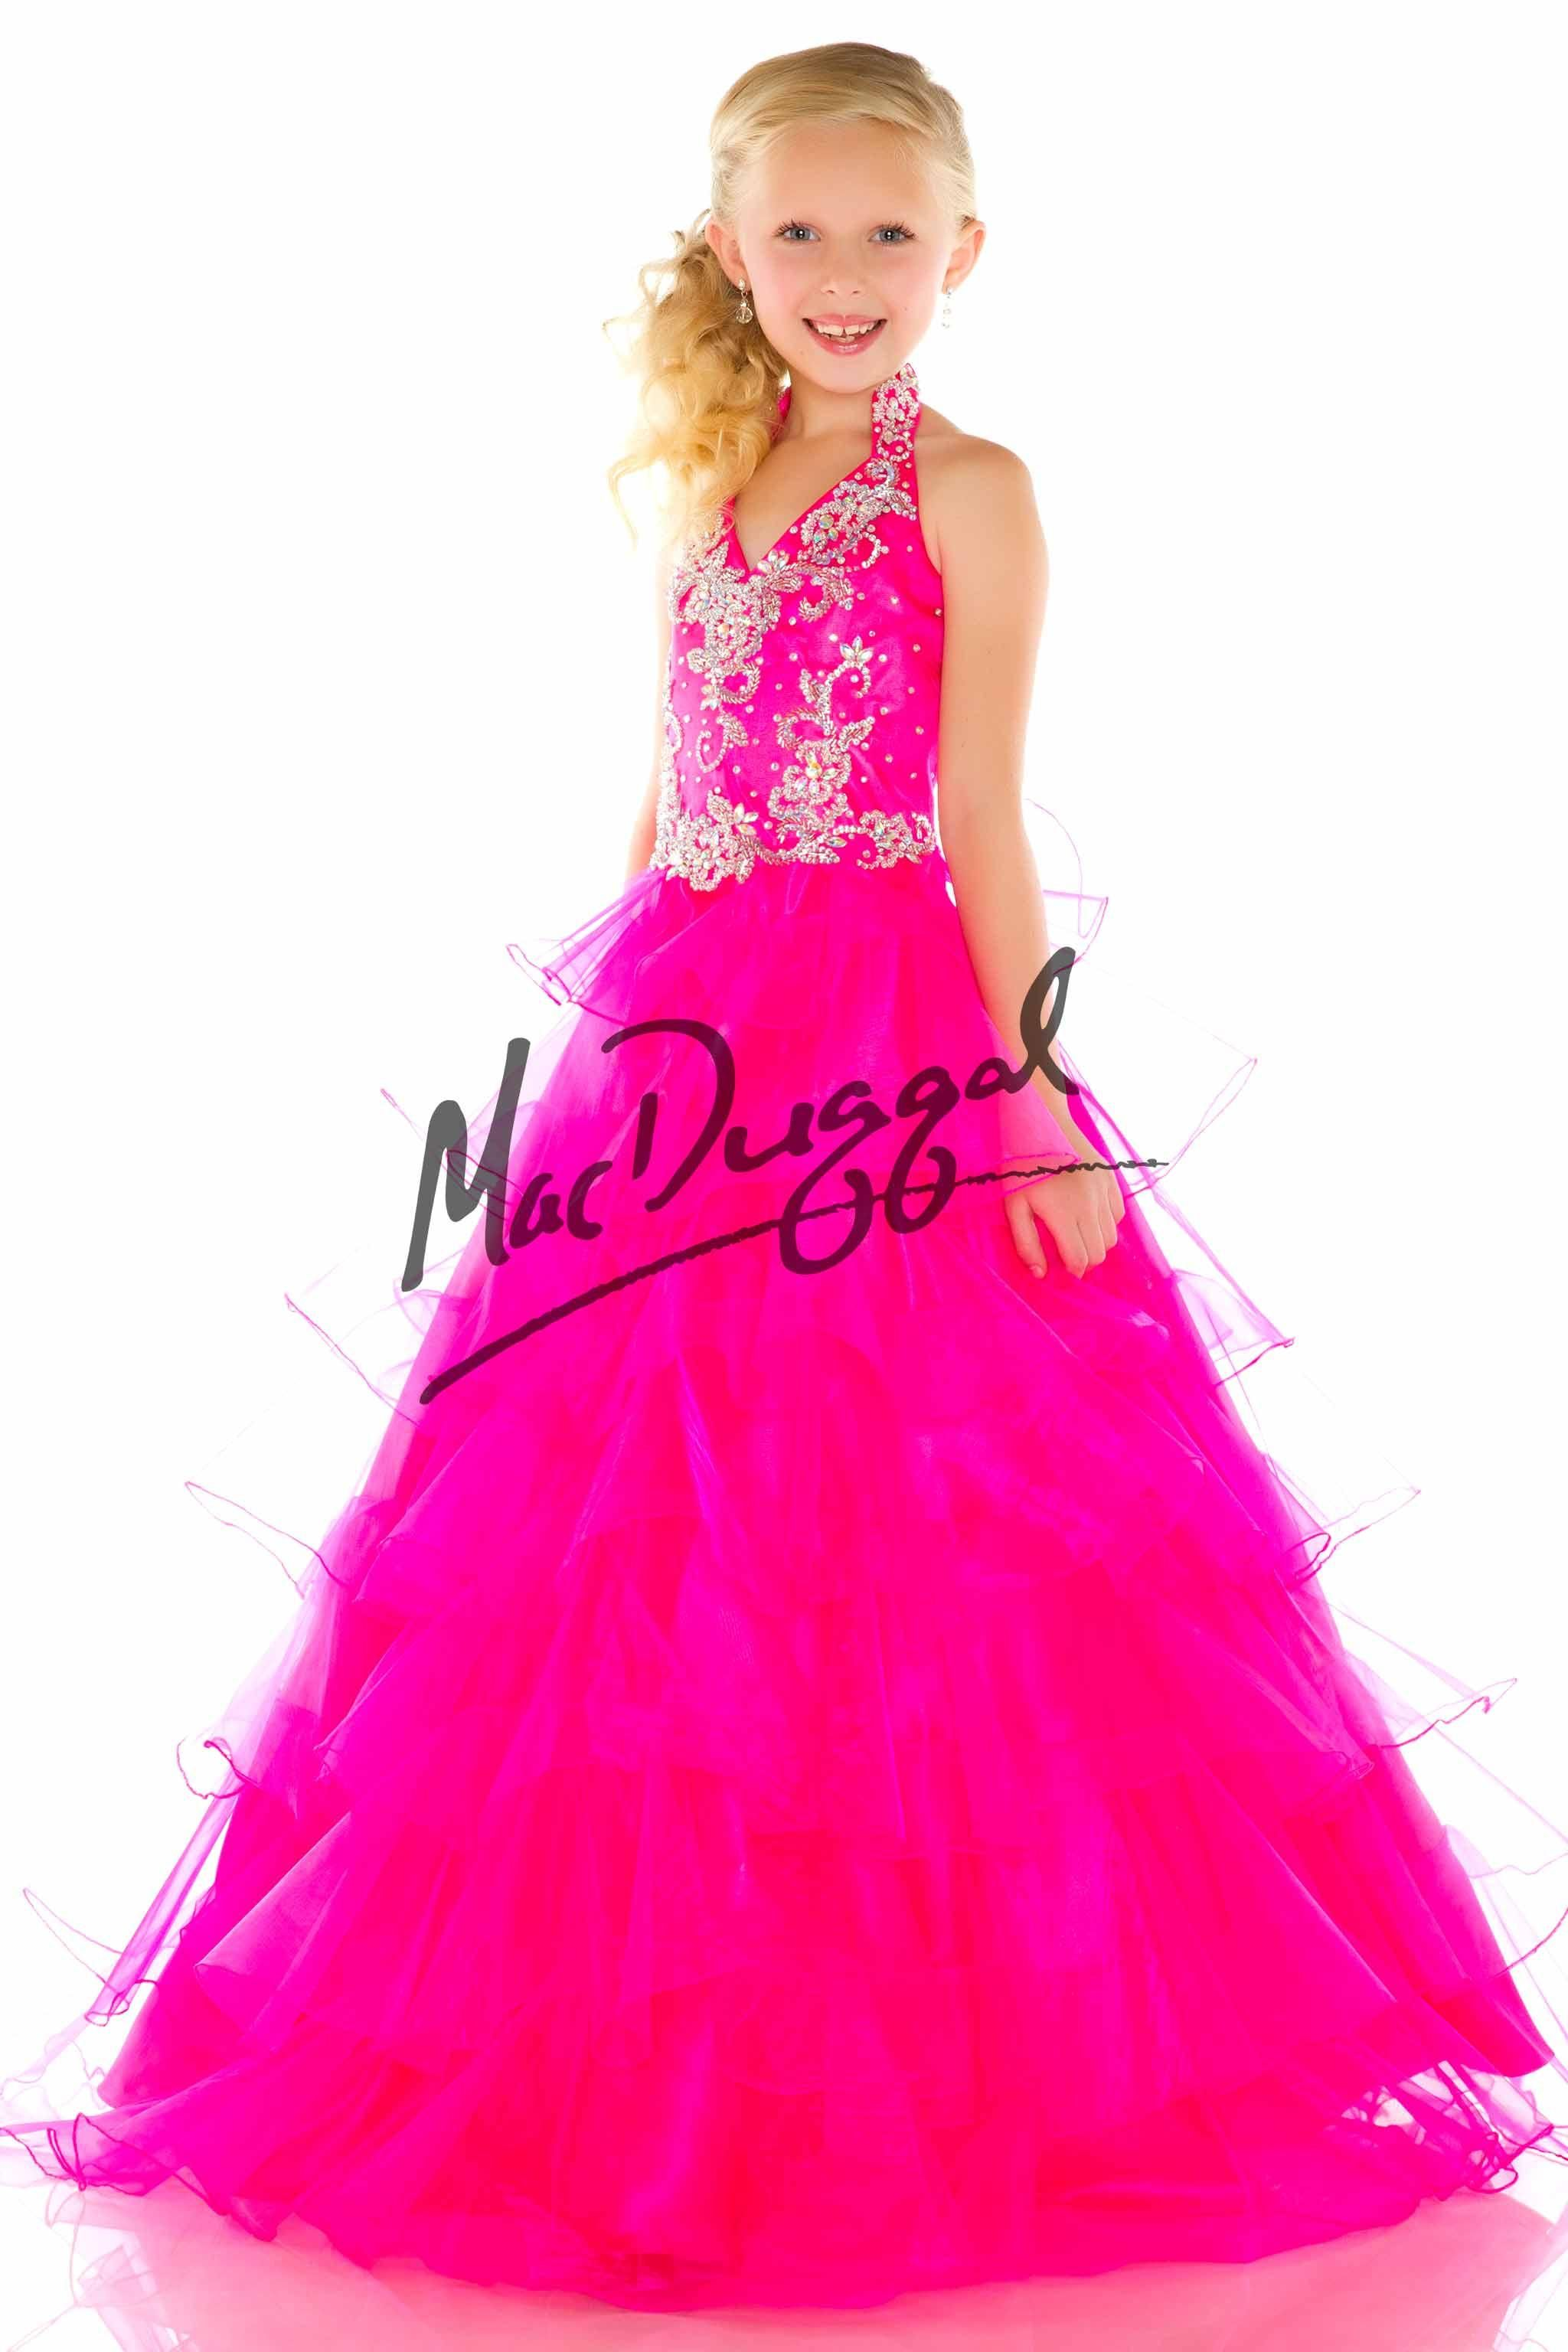 pink pageant dress for little girls - Google Search | María Clara ...